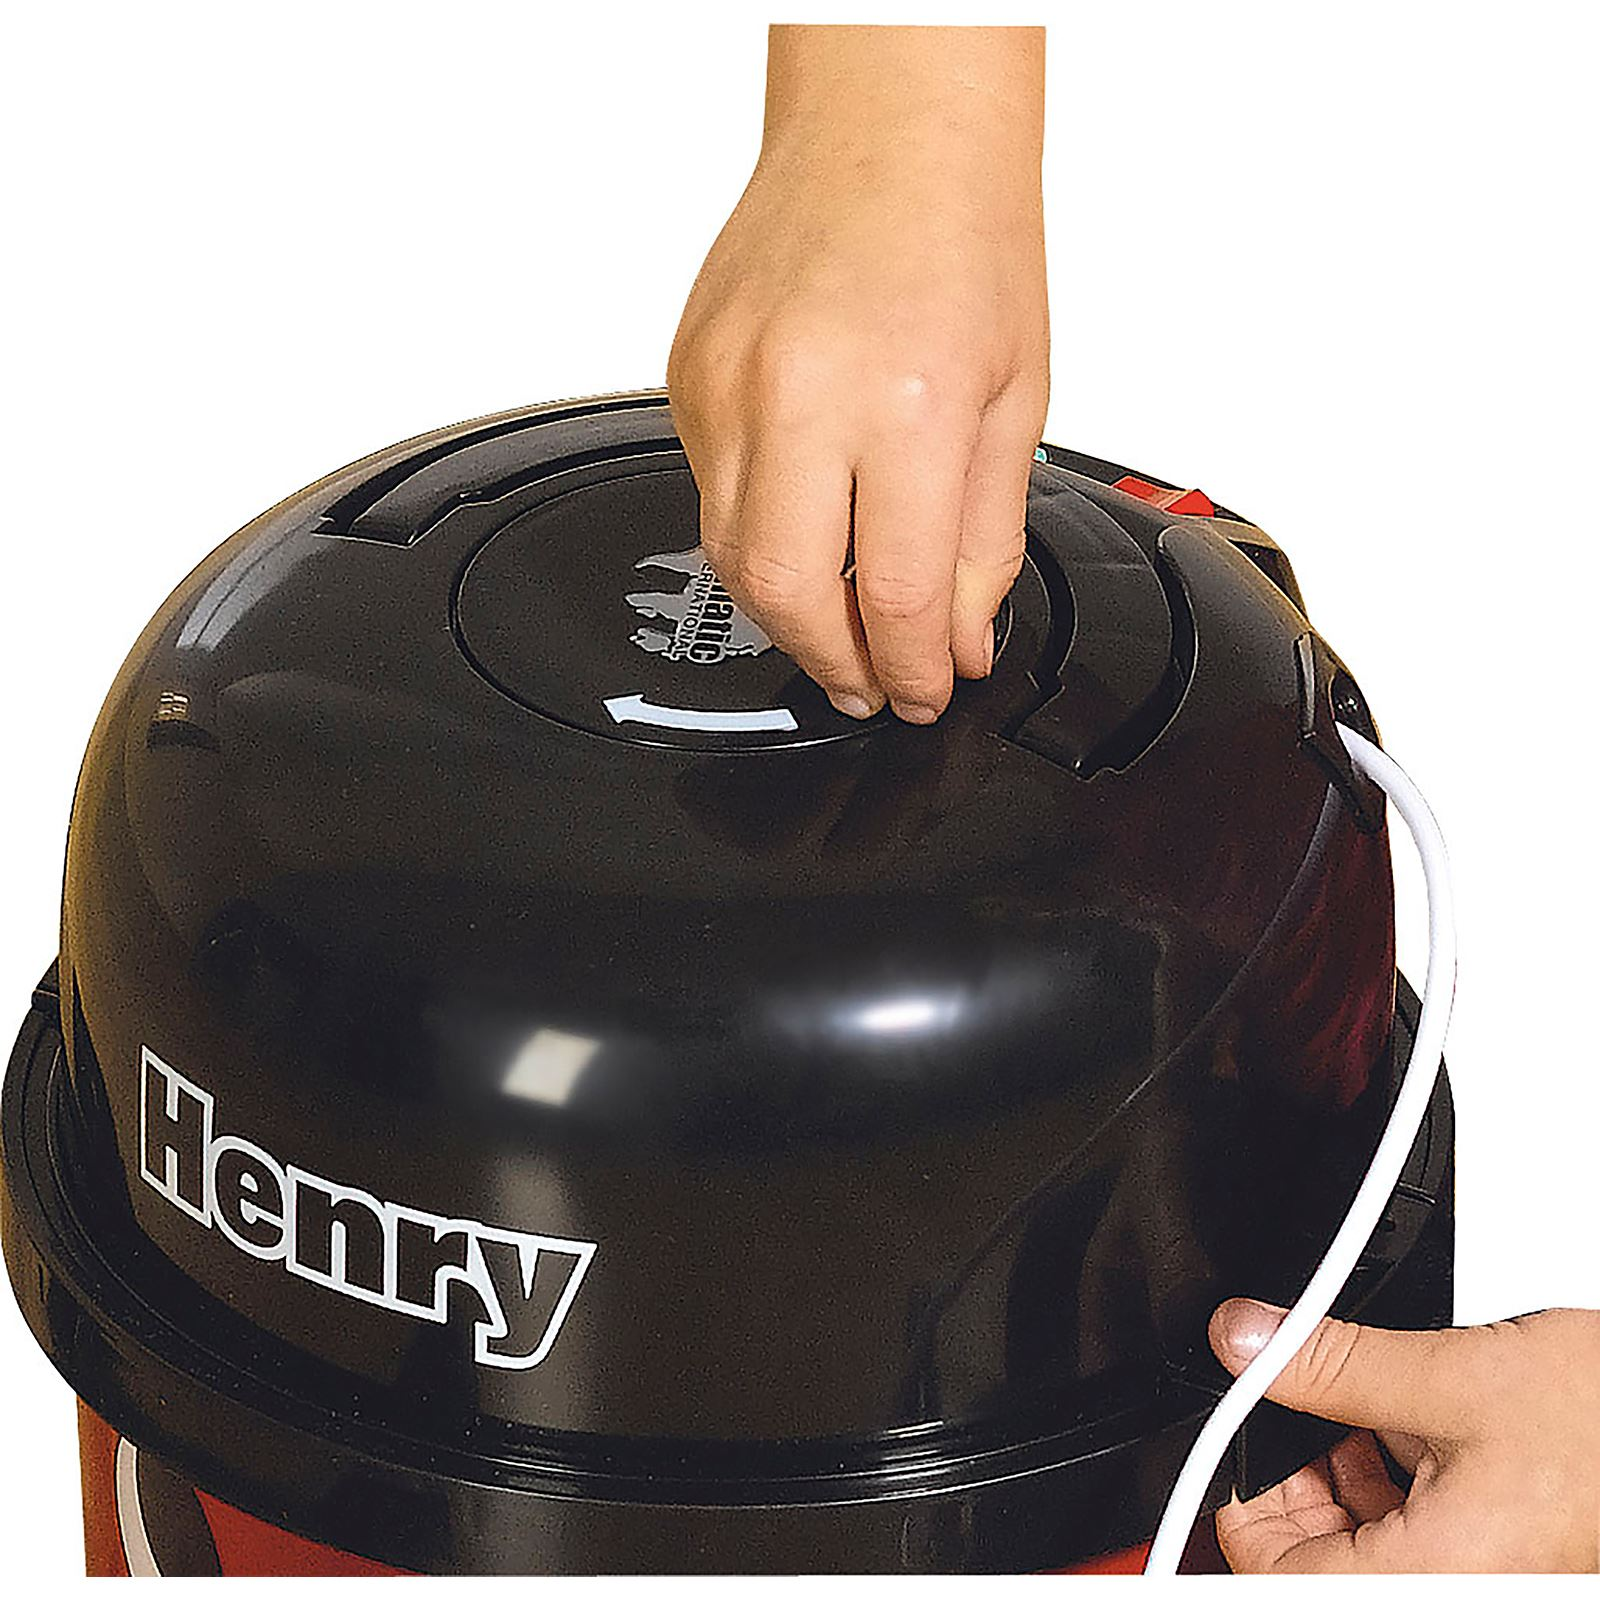 Indexbild 23 - KIDS VACUUM CLEANERS - LITTLE HENRY HETTY DYSON - KIDS CHILDRENS ROLE PLAY